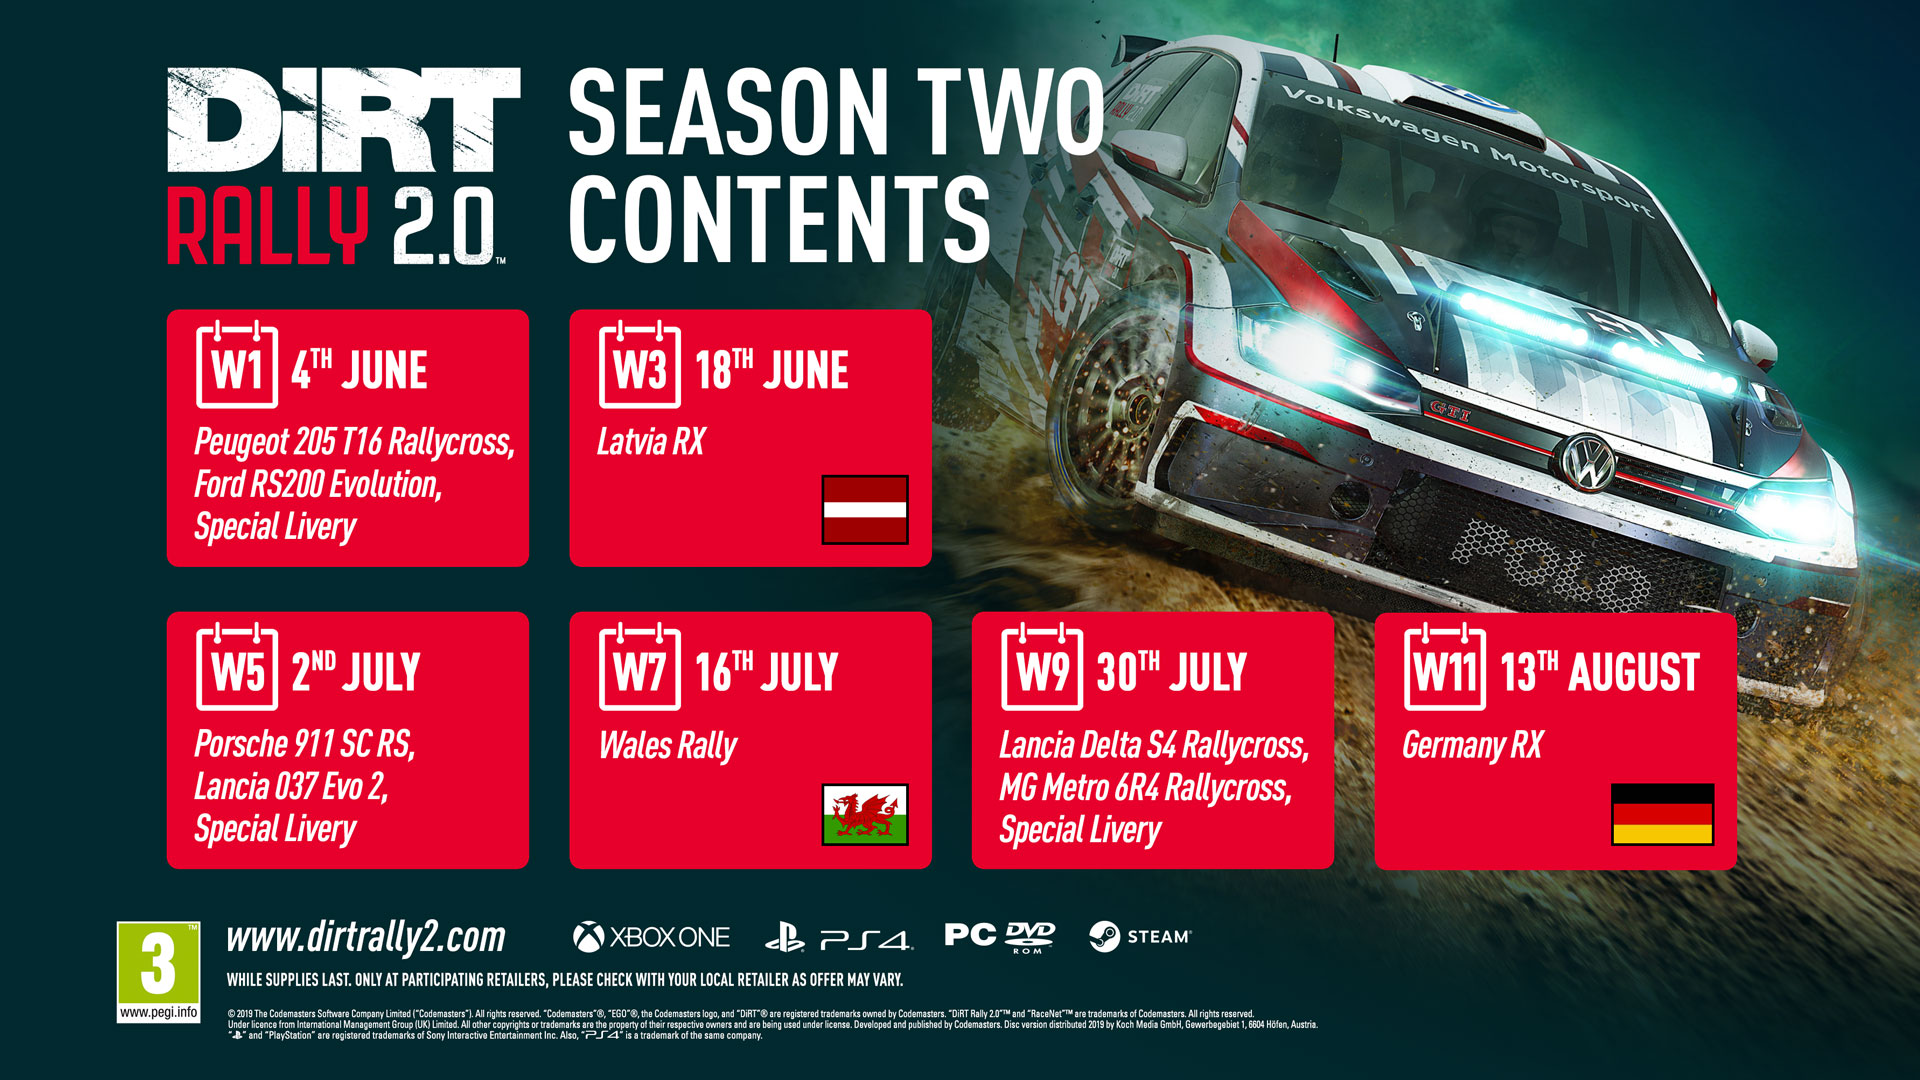 DIRT_RALLY_2.0-CONTENT_SEASON2-PEGI.jpg